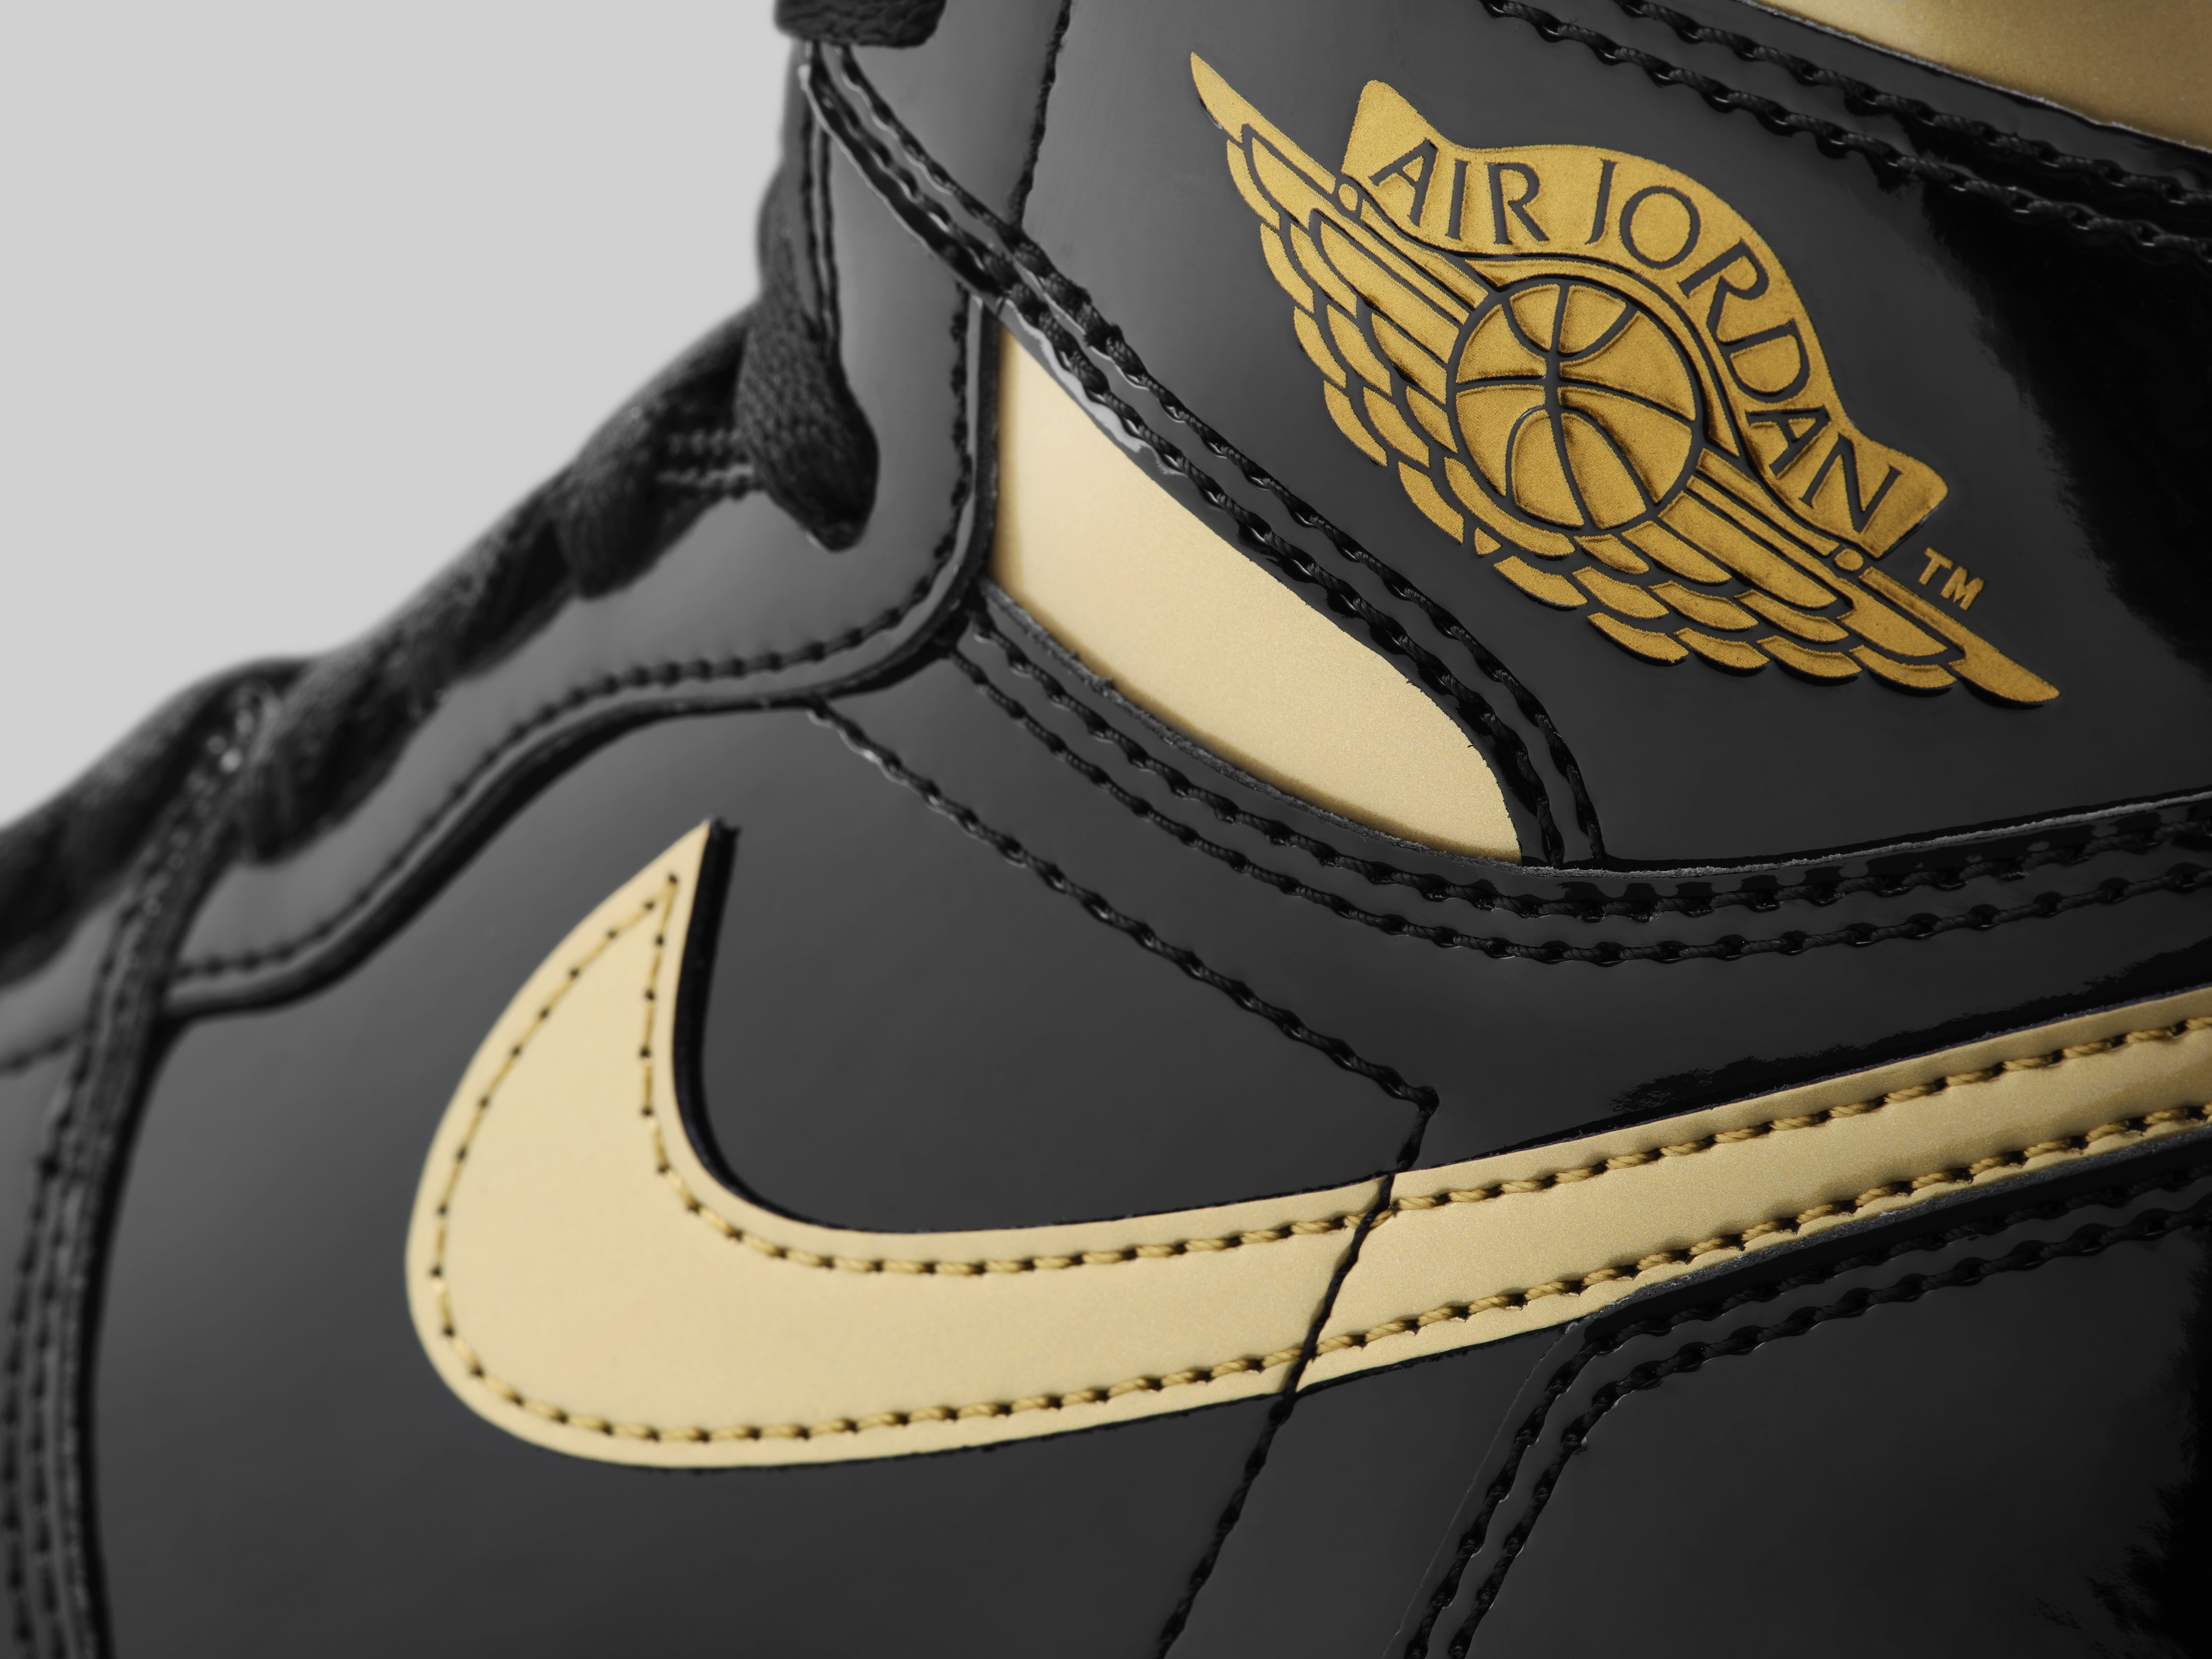 Air Jordan 1 Retro High OG 'Black/Gold' 555088-032 Lateral